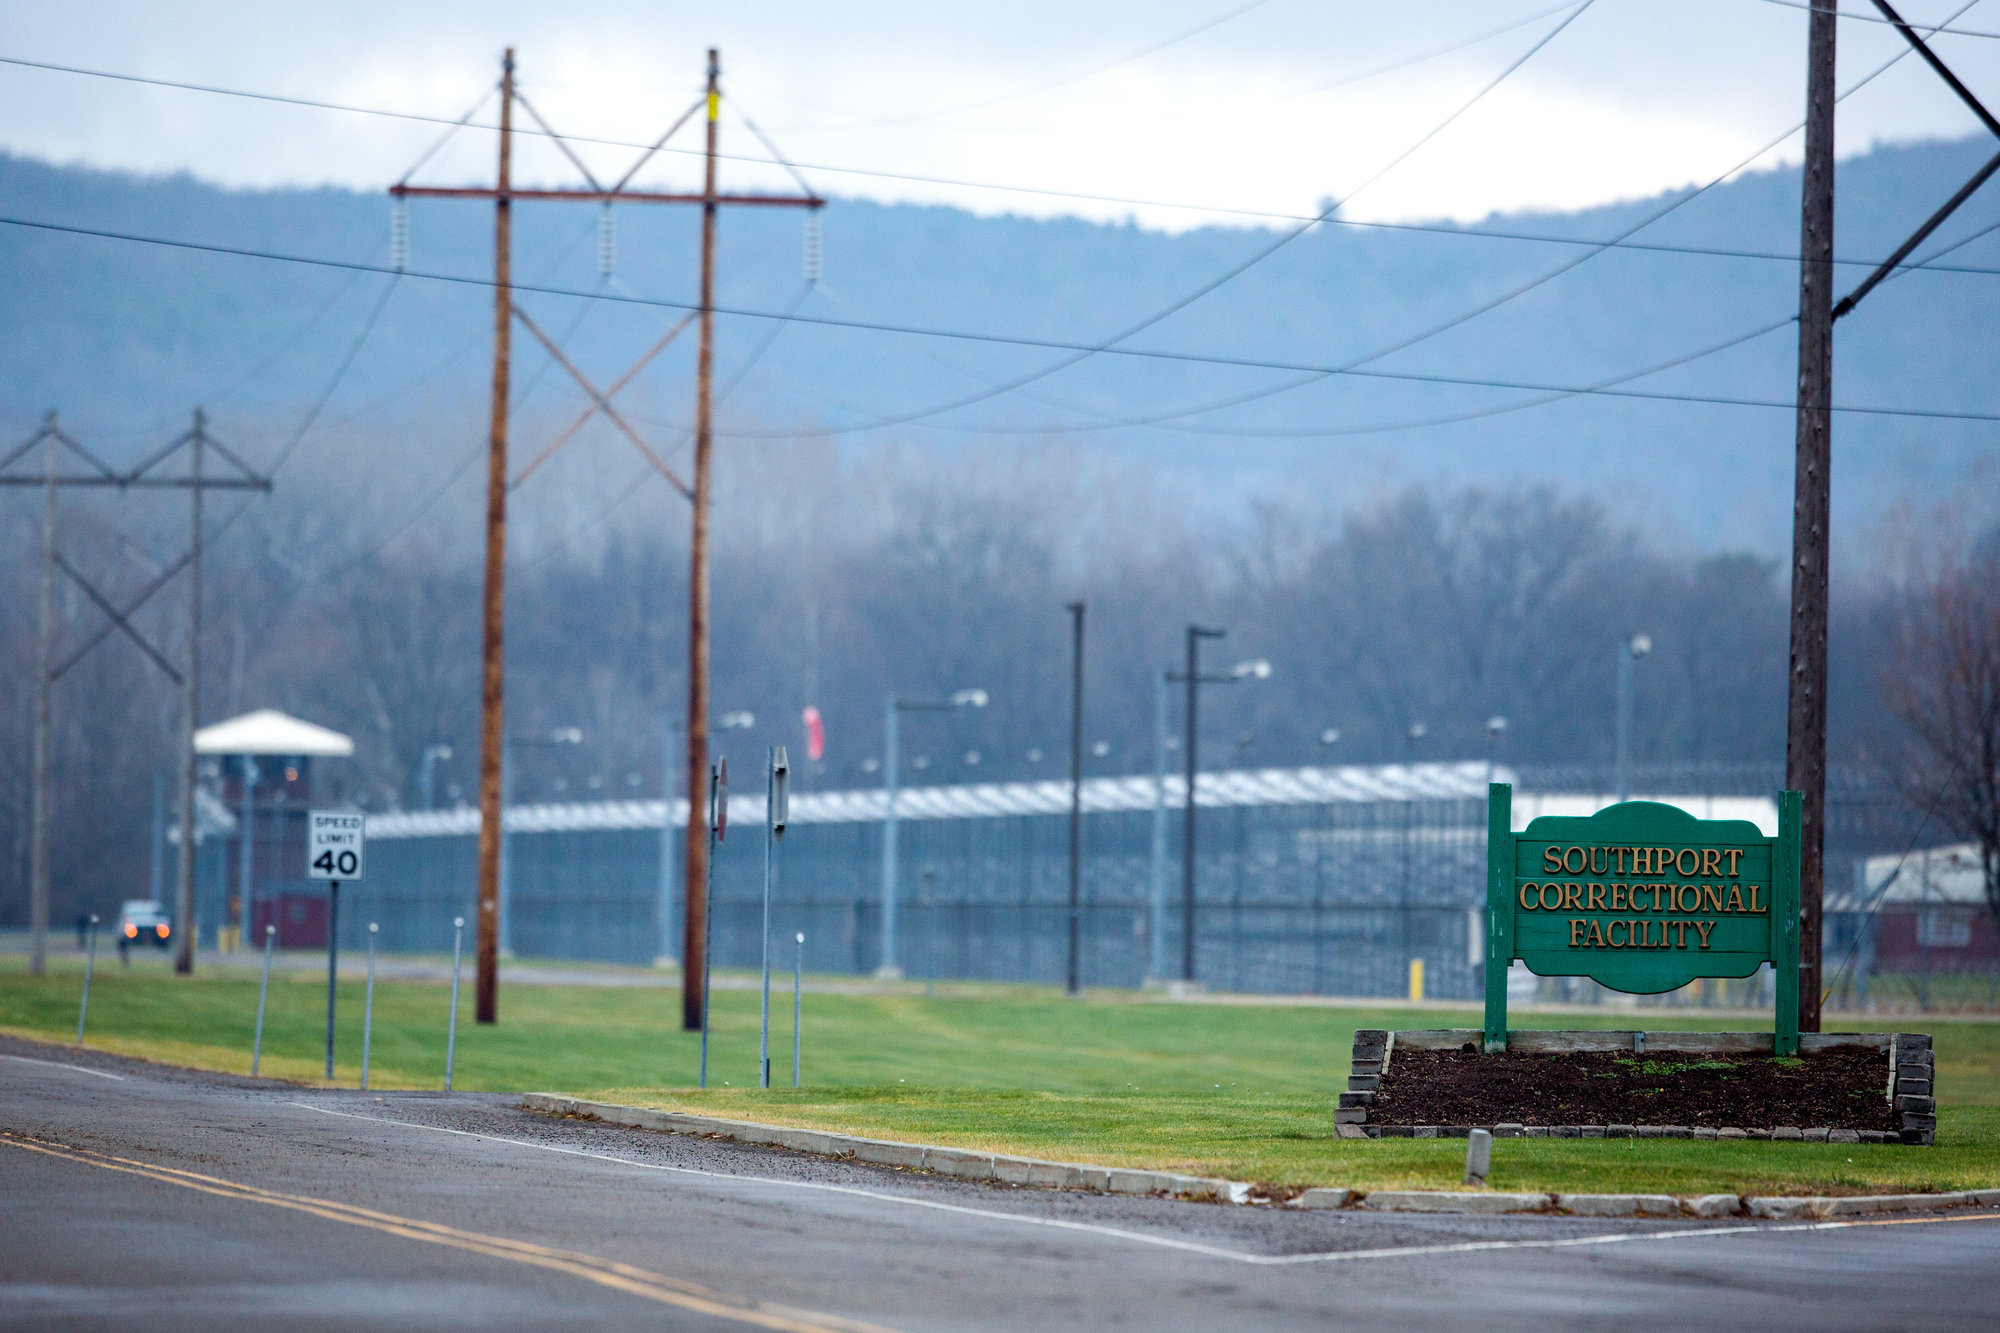 Southport Correctional Facility, in the Southern Tier of New York State, was cited in more lawsuits since 2010 than any state prison except for Attica Correctional Facility.